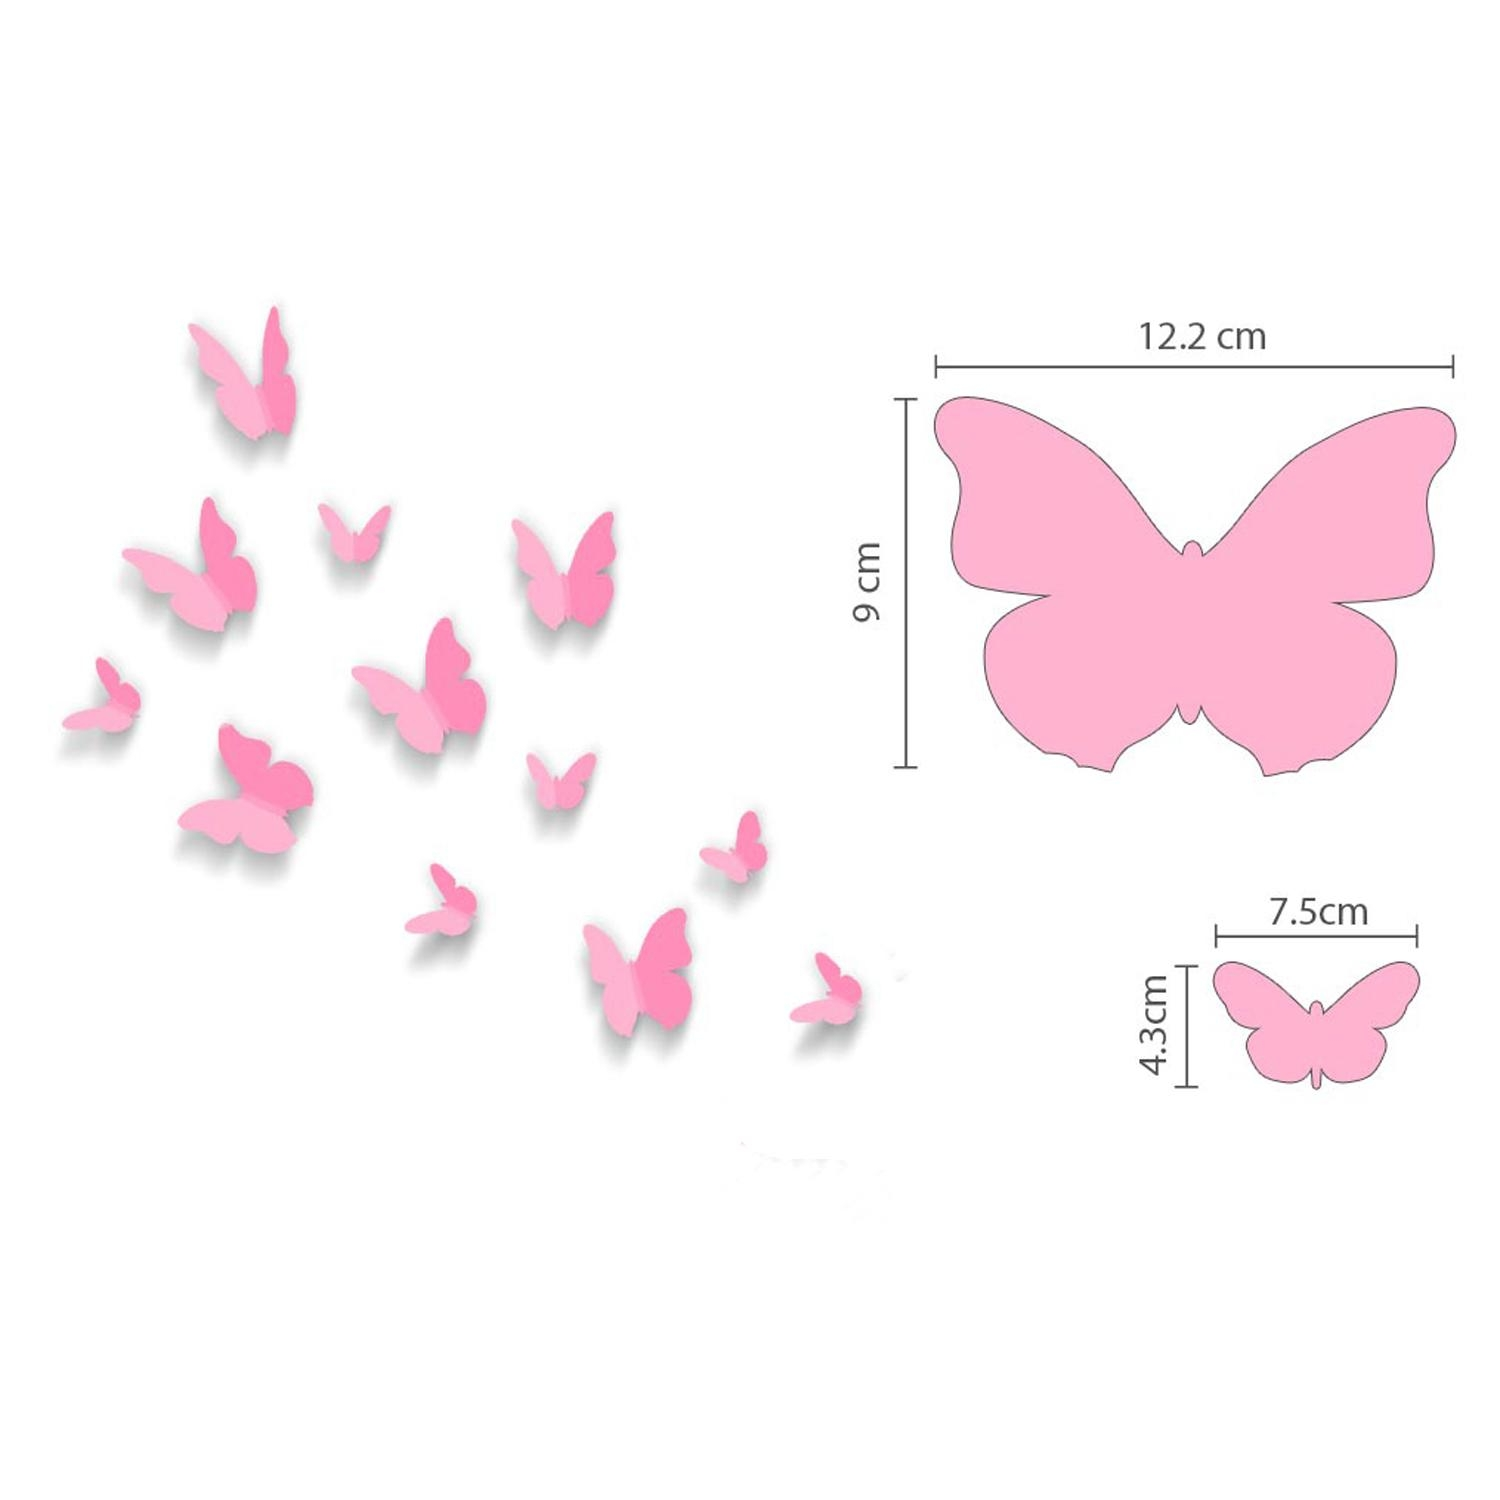 Pink 3D Butterflies Wall Art Stickers Pertaining To Pink Butterfly Wall Art (Image 19 of 20)